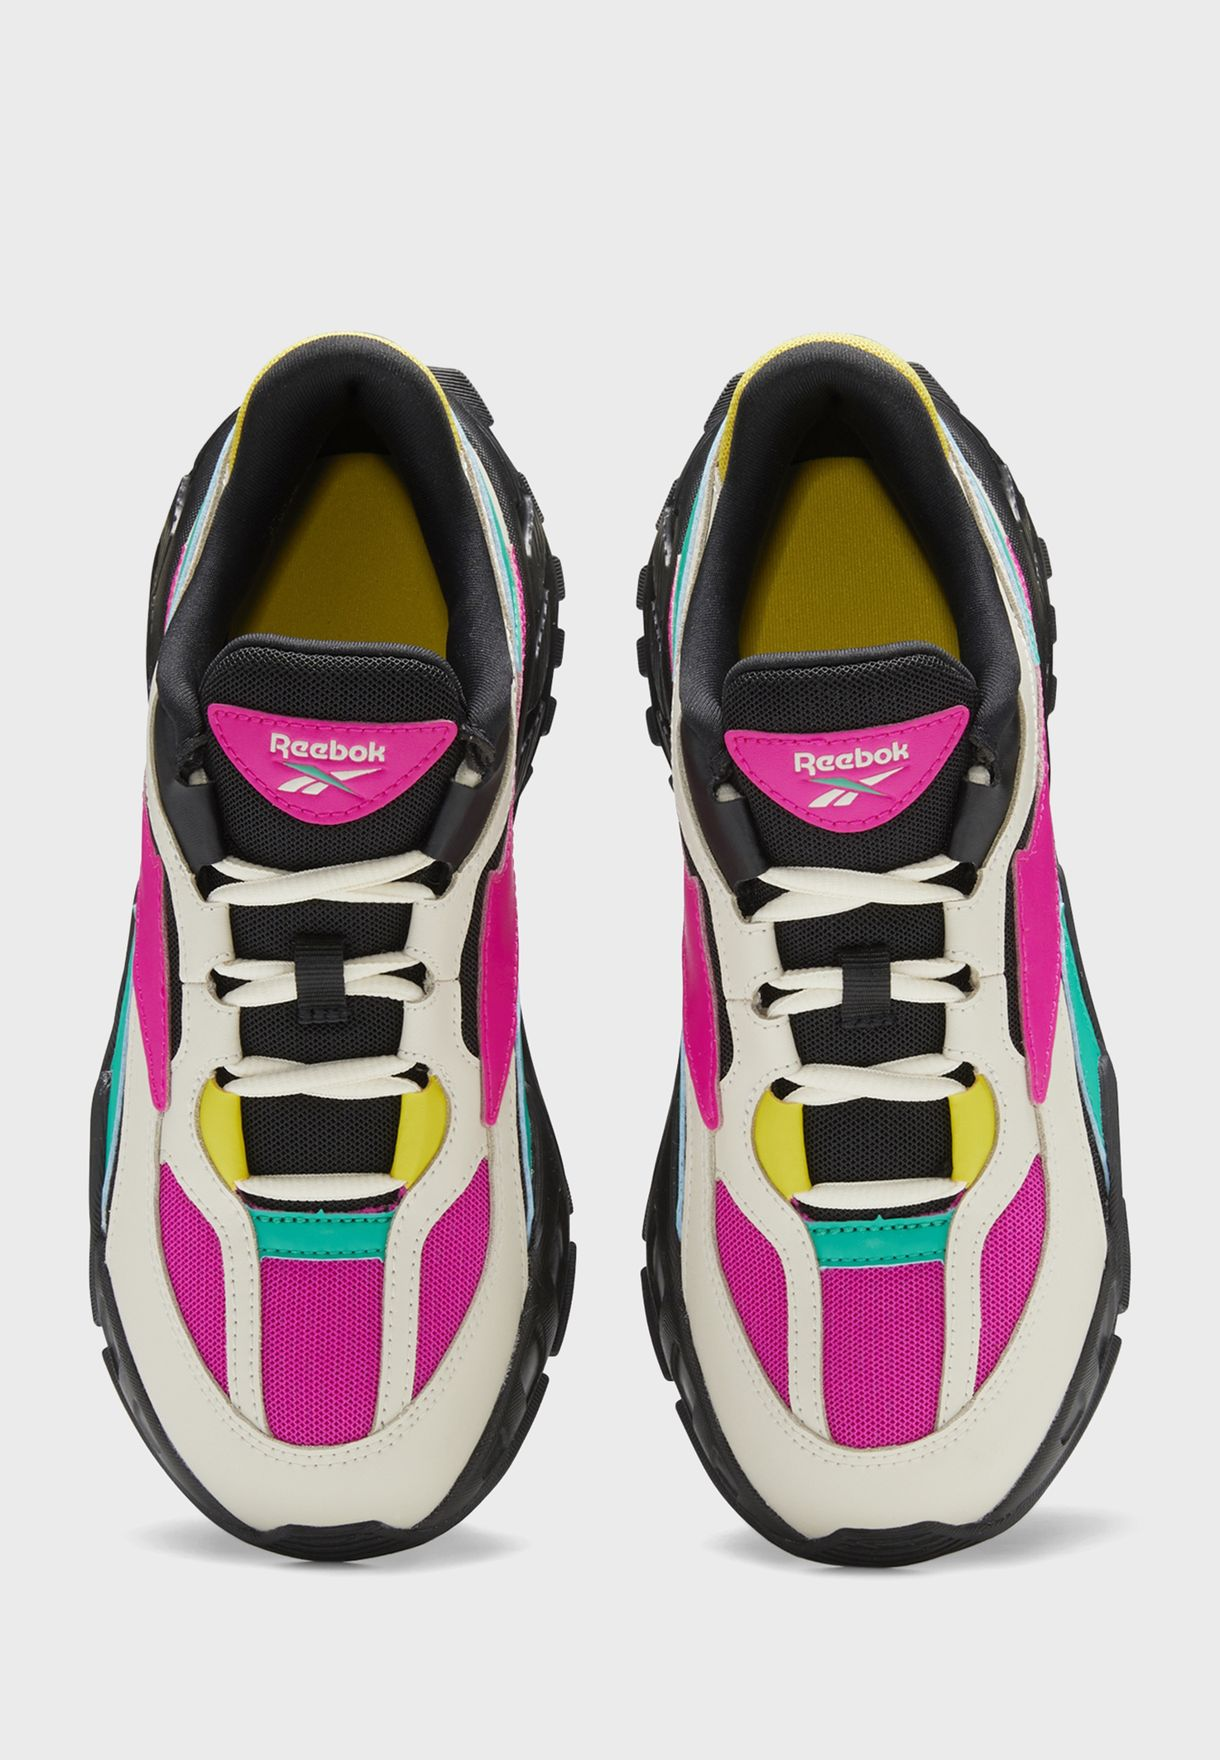 Evzn Foundation Sports Women's Shoes